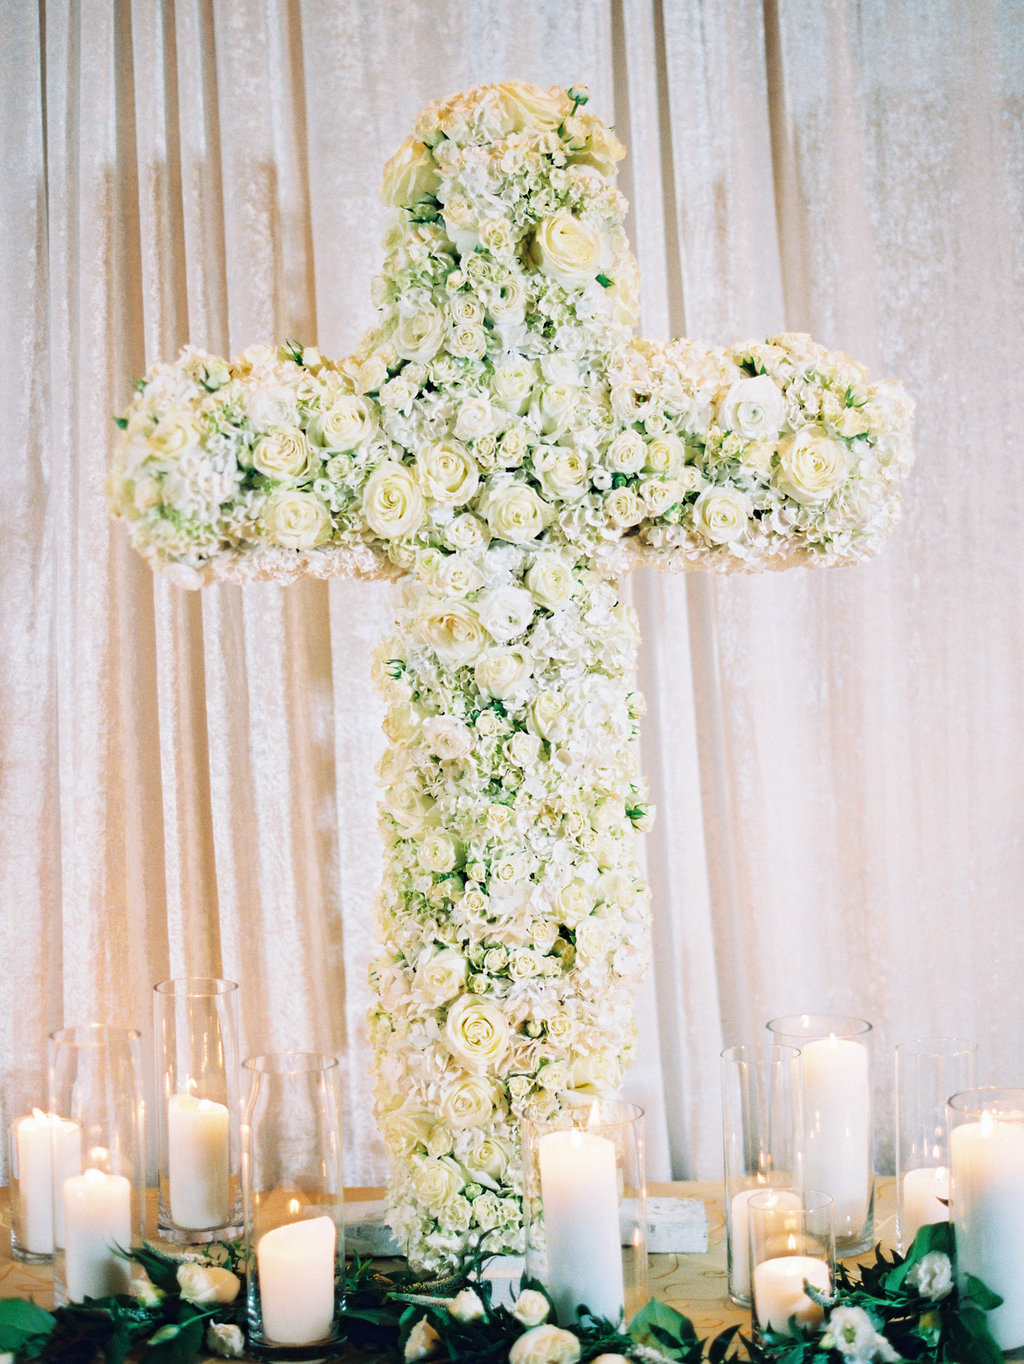 Cross on a table made out of white roses and small white flowers with candles lit around the cross